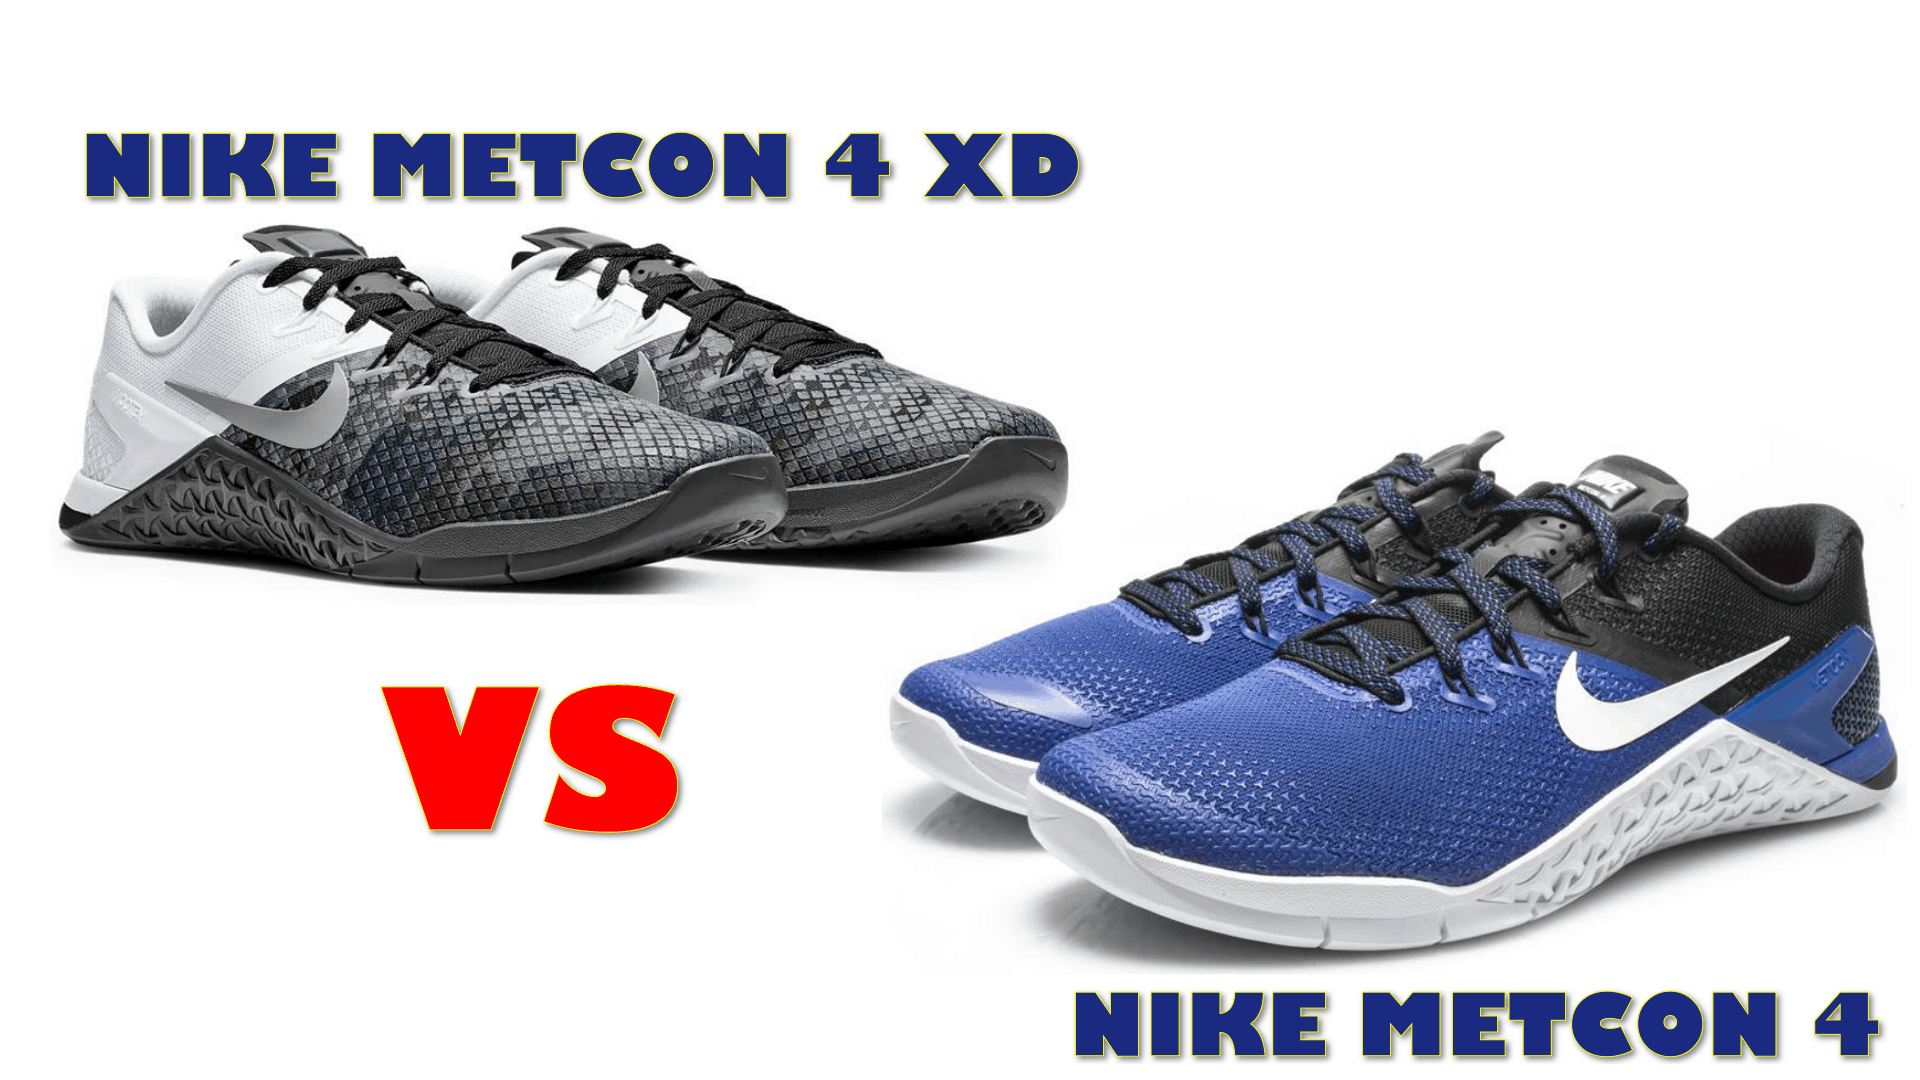 d2b562ef4ca3 Nike Metcon 4 XD vs Nike Metcon 4 (NEW FOR 2019!)